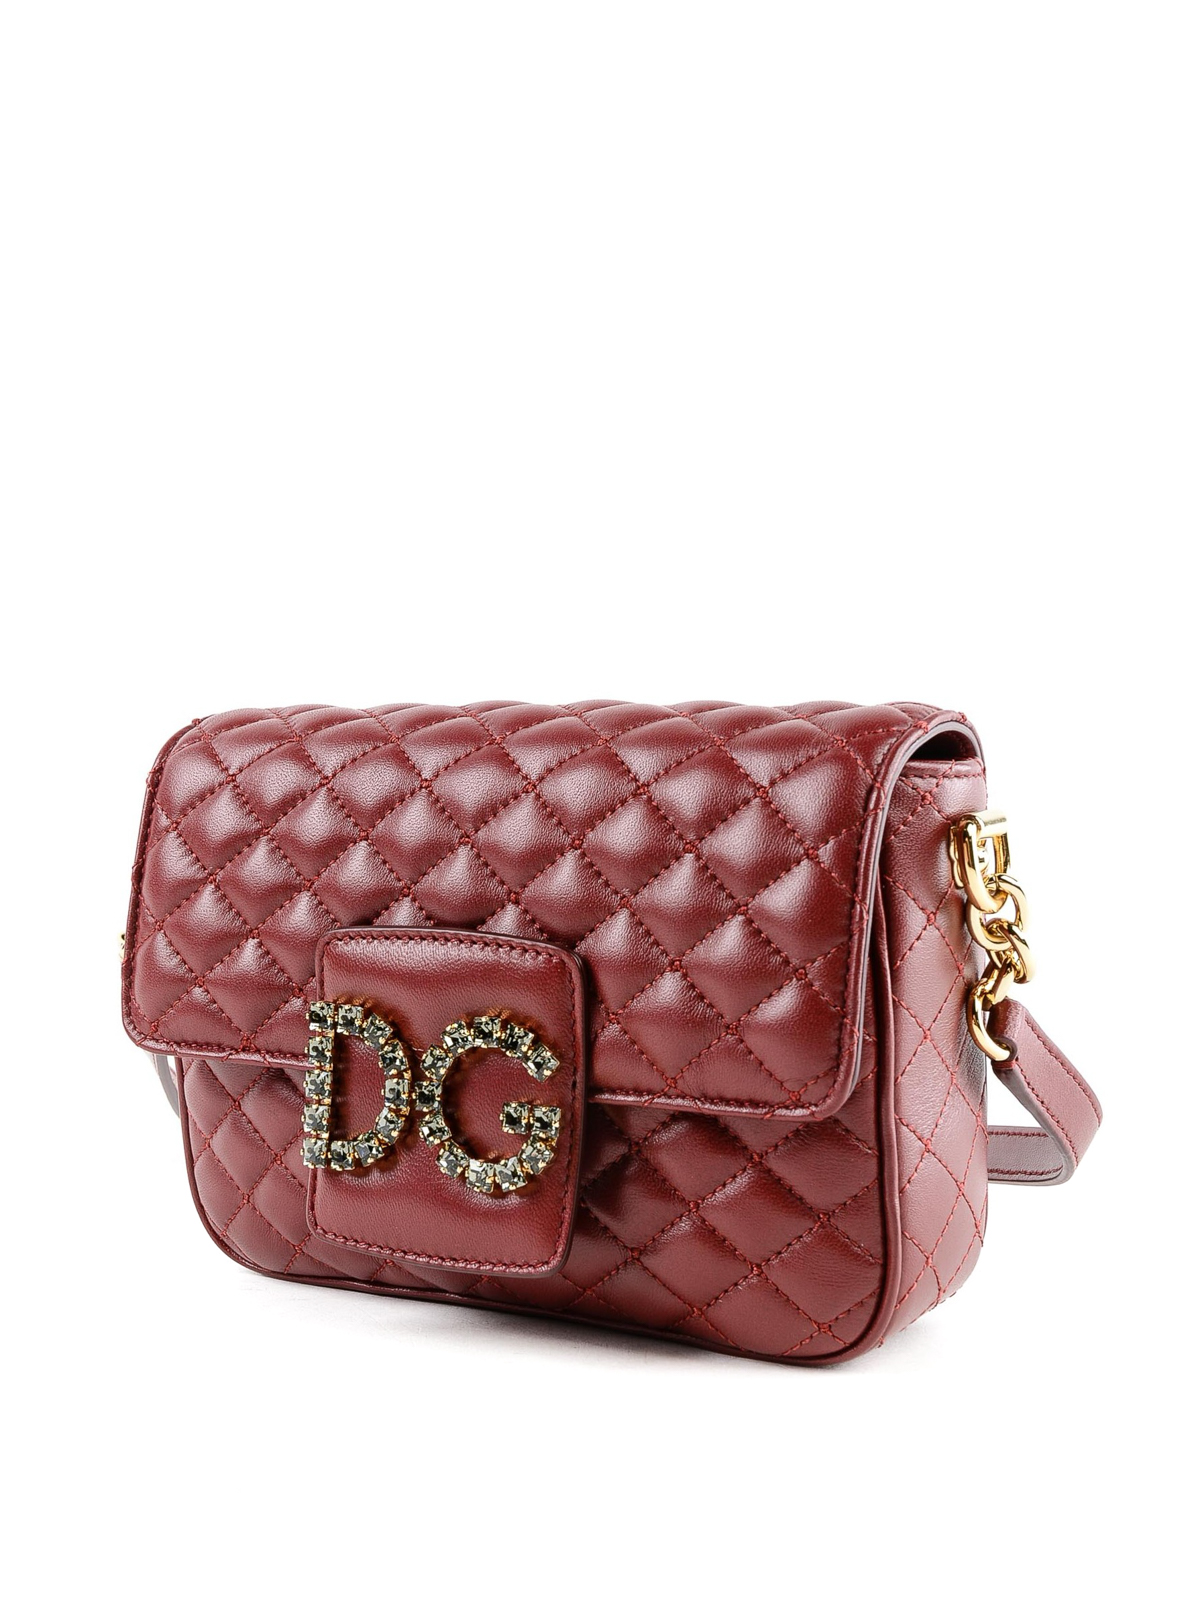 db1fa6d215 DOLCE   GABBANA  shoulder bags online - Quilted leather DG Millennials red  small bag